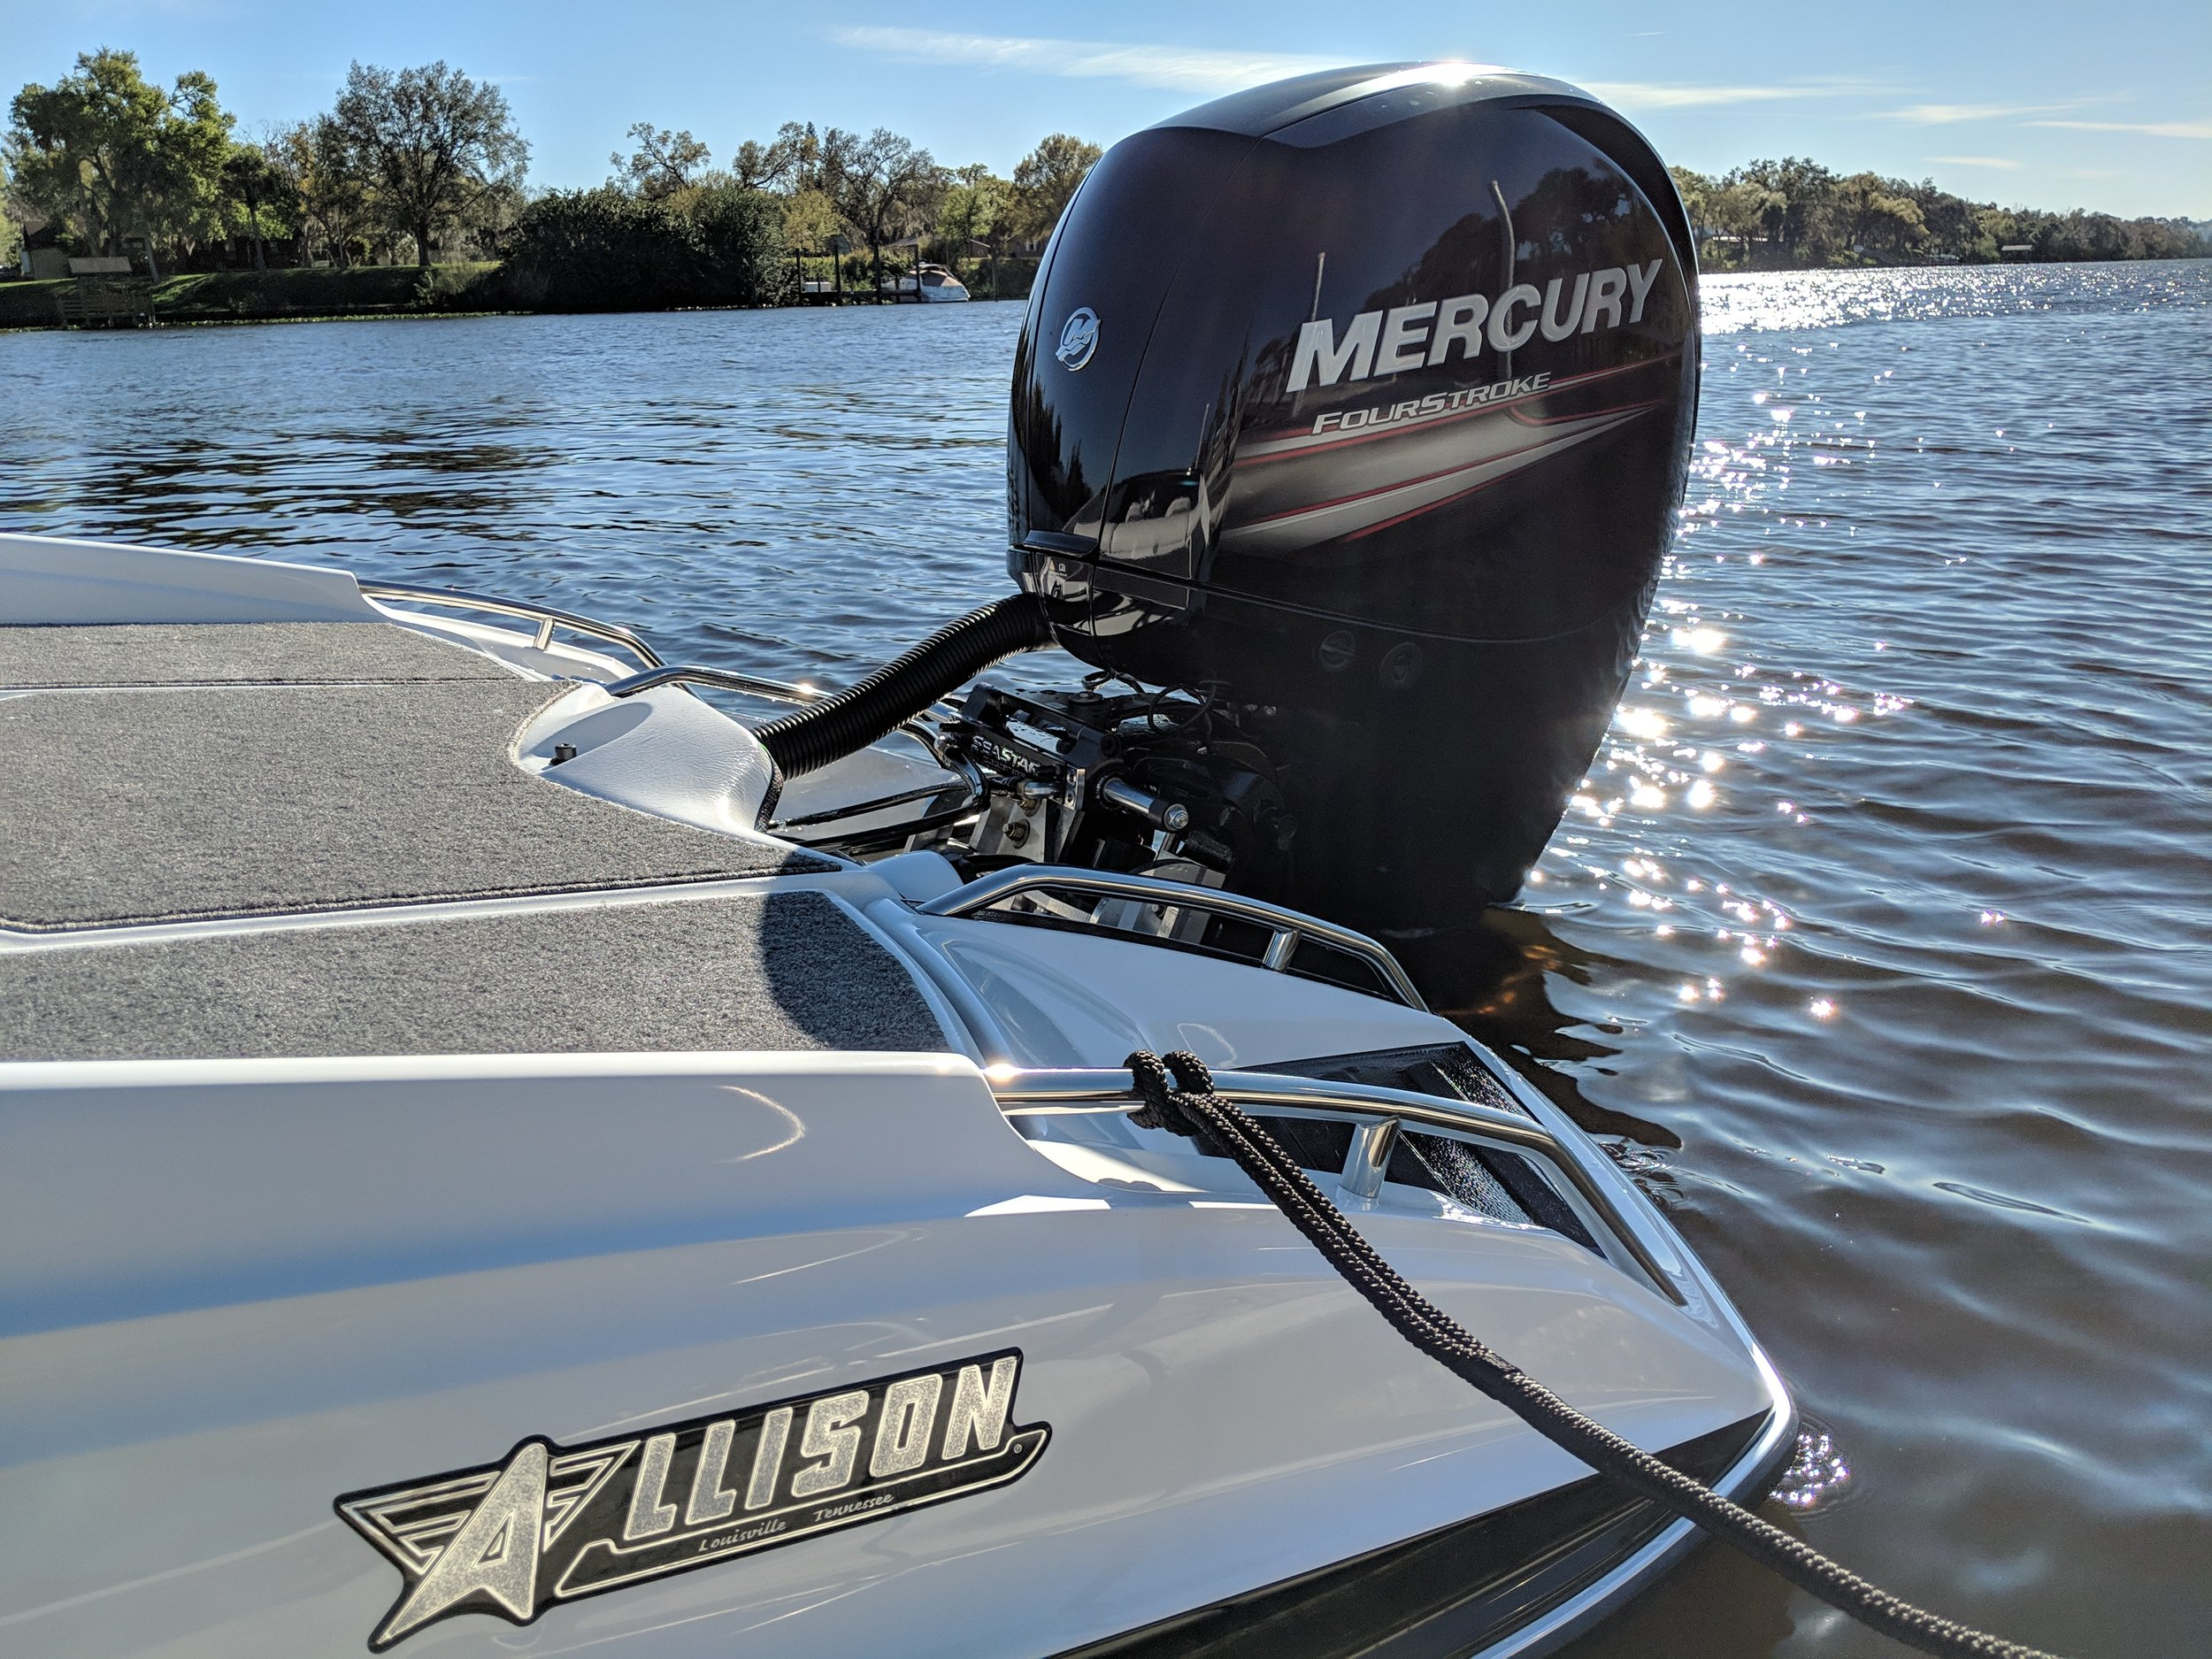 Economical - The Mercury four stroke 150 is very efficient, and easy to operate. It is slowly becoming a budget performance engine.